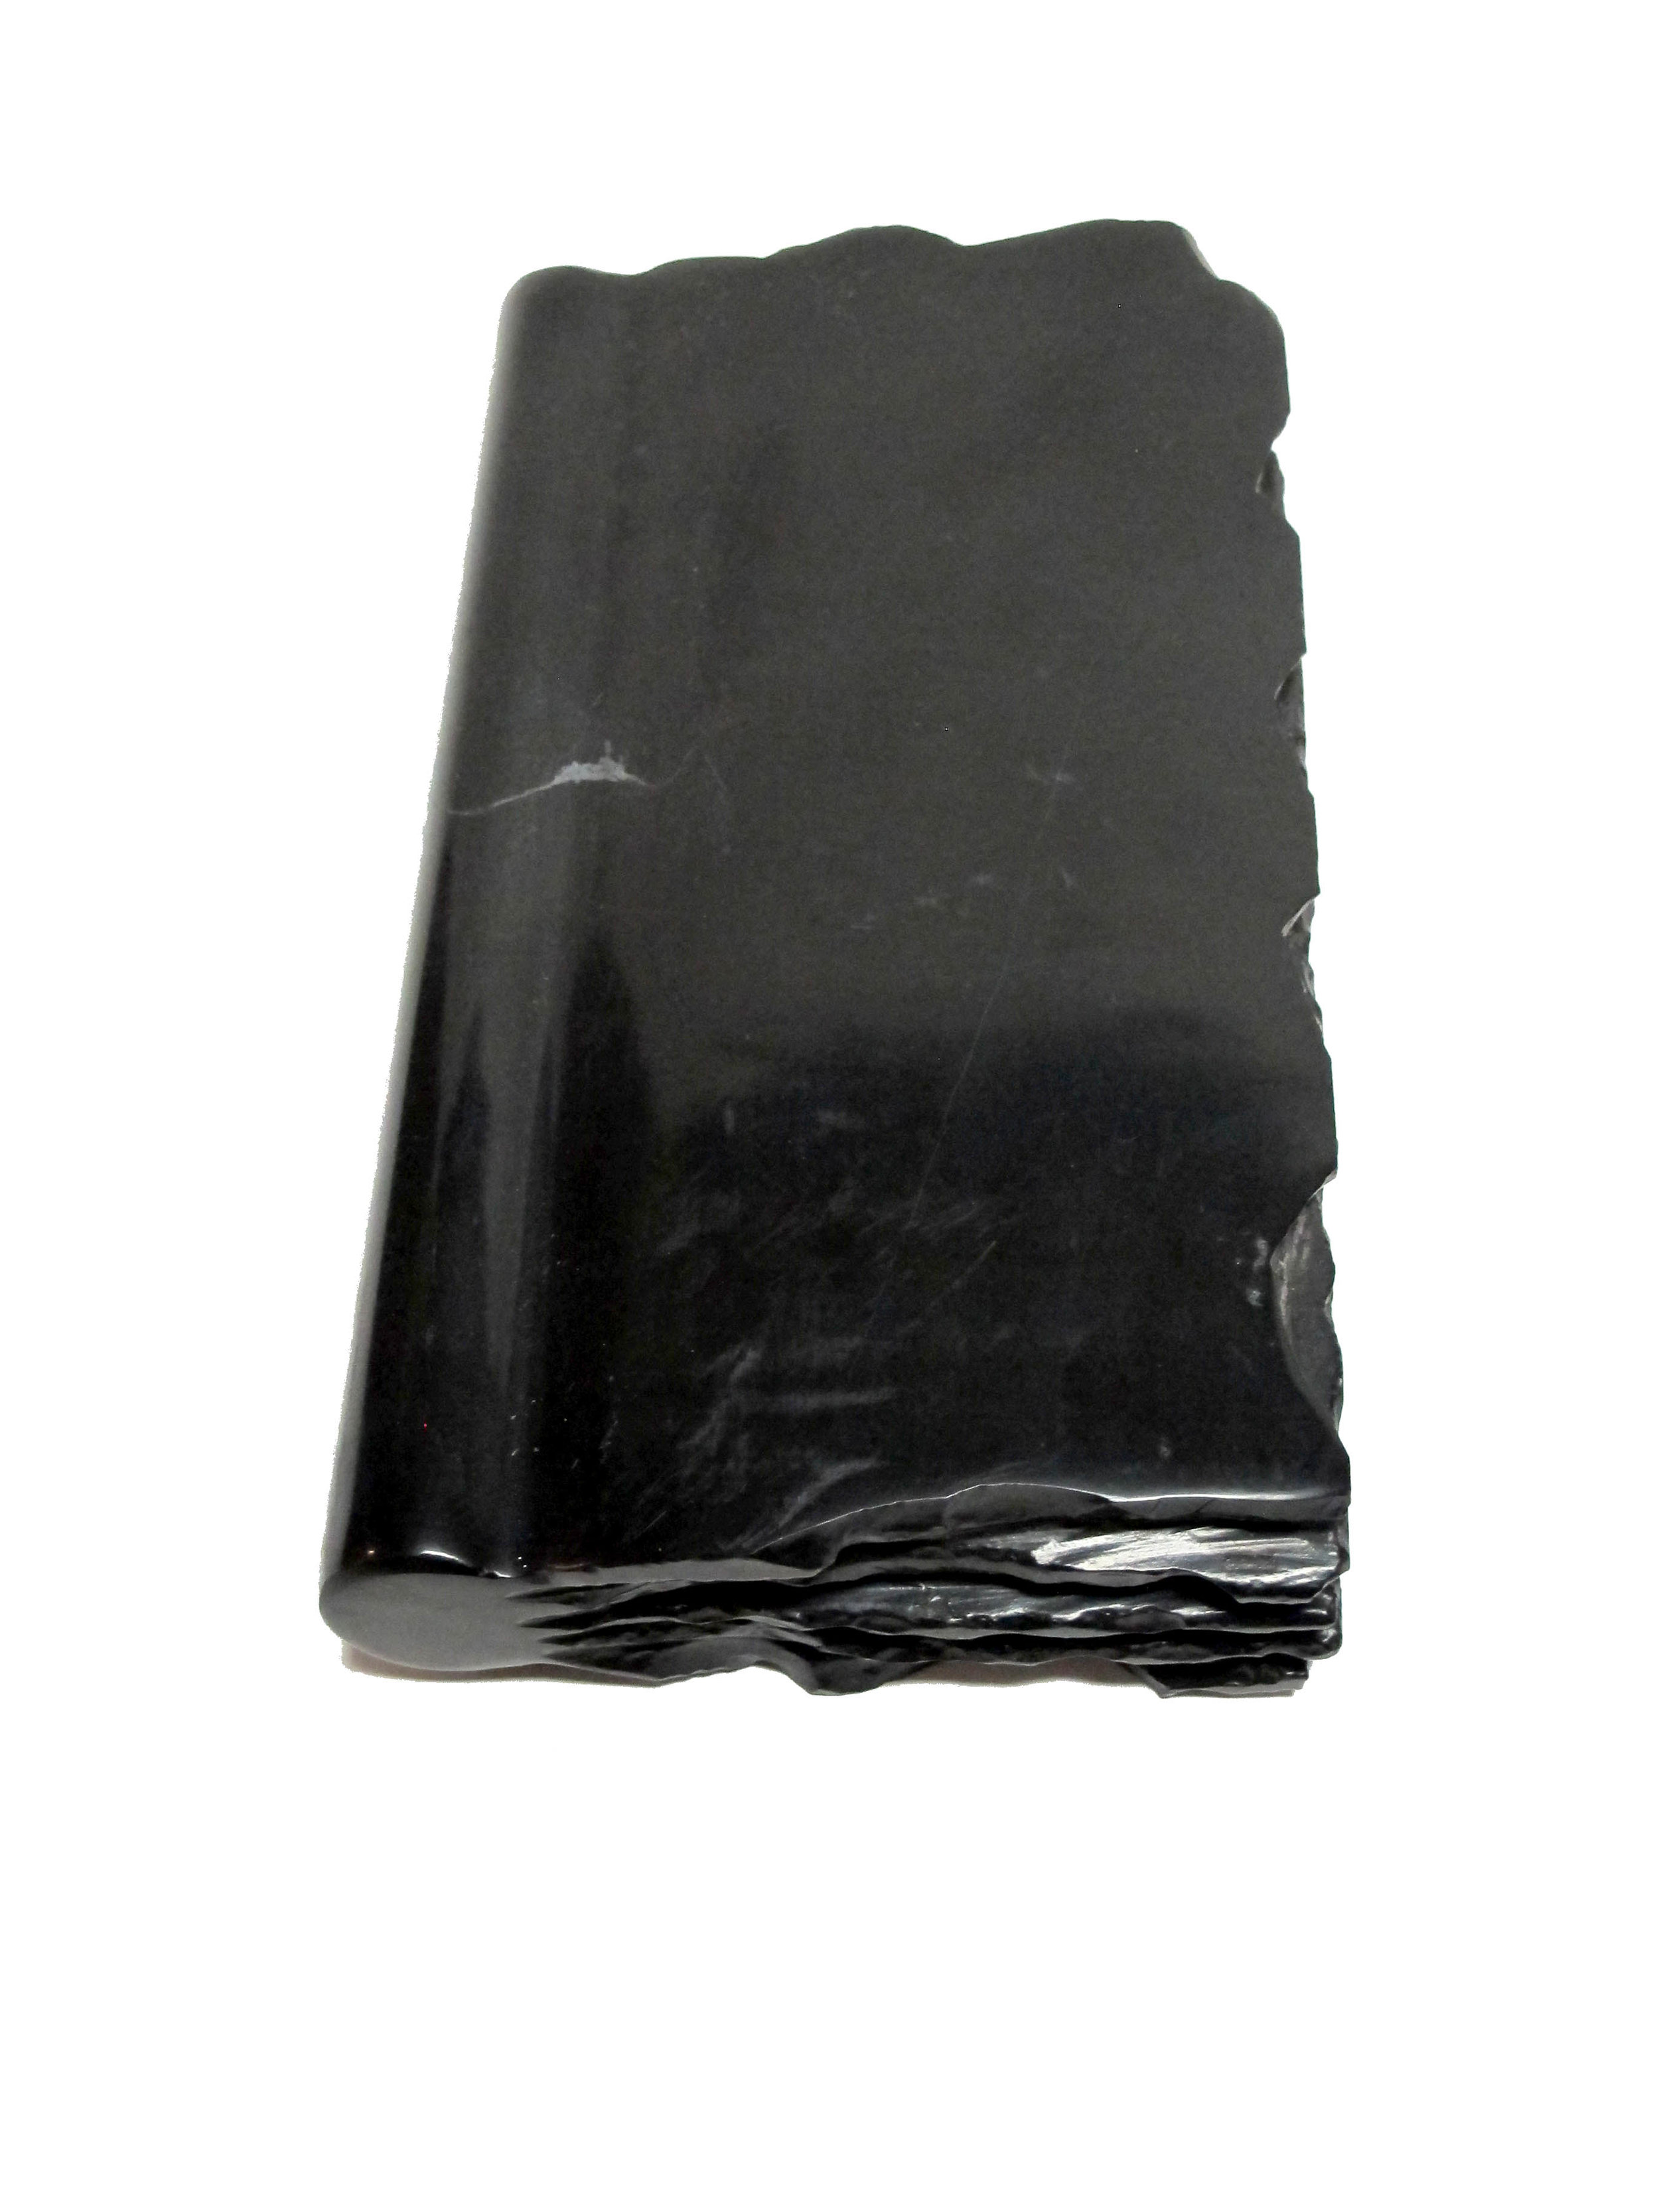 KL_Small Novel Book_Black Marble2.jpg